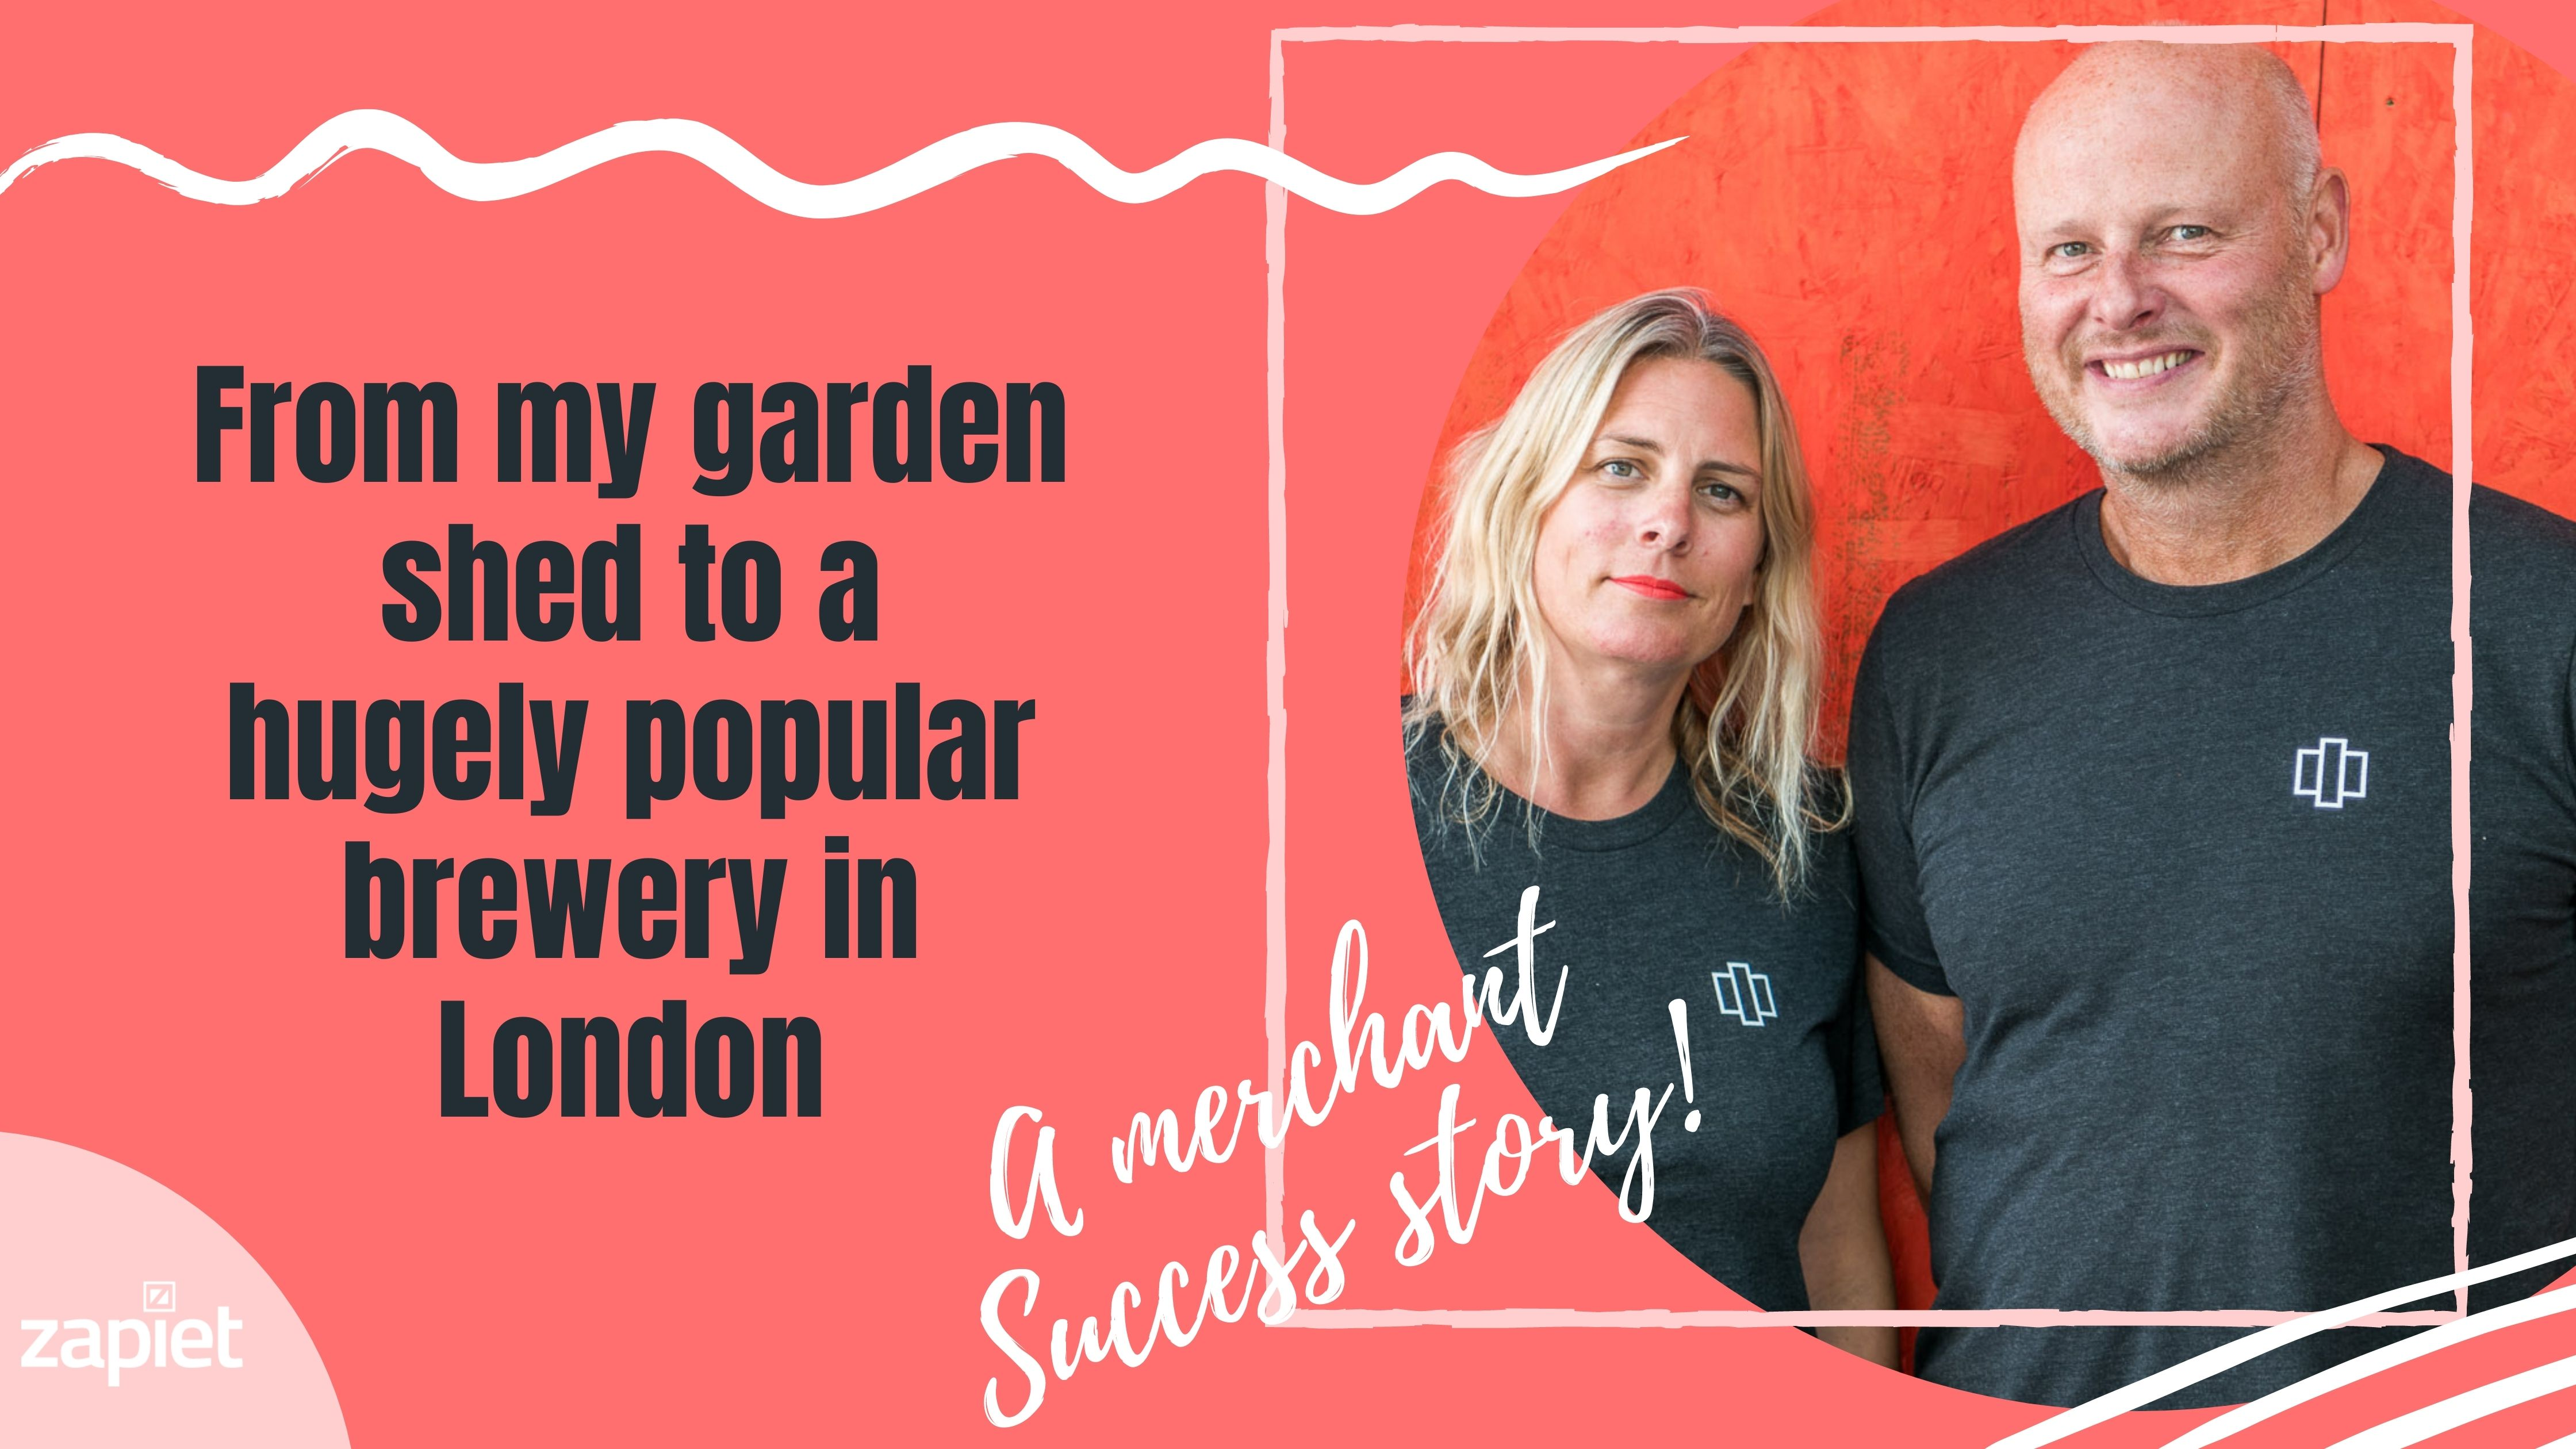 From my garden shed to a hugely popular brewery in London